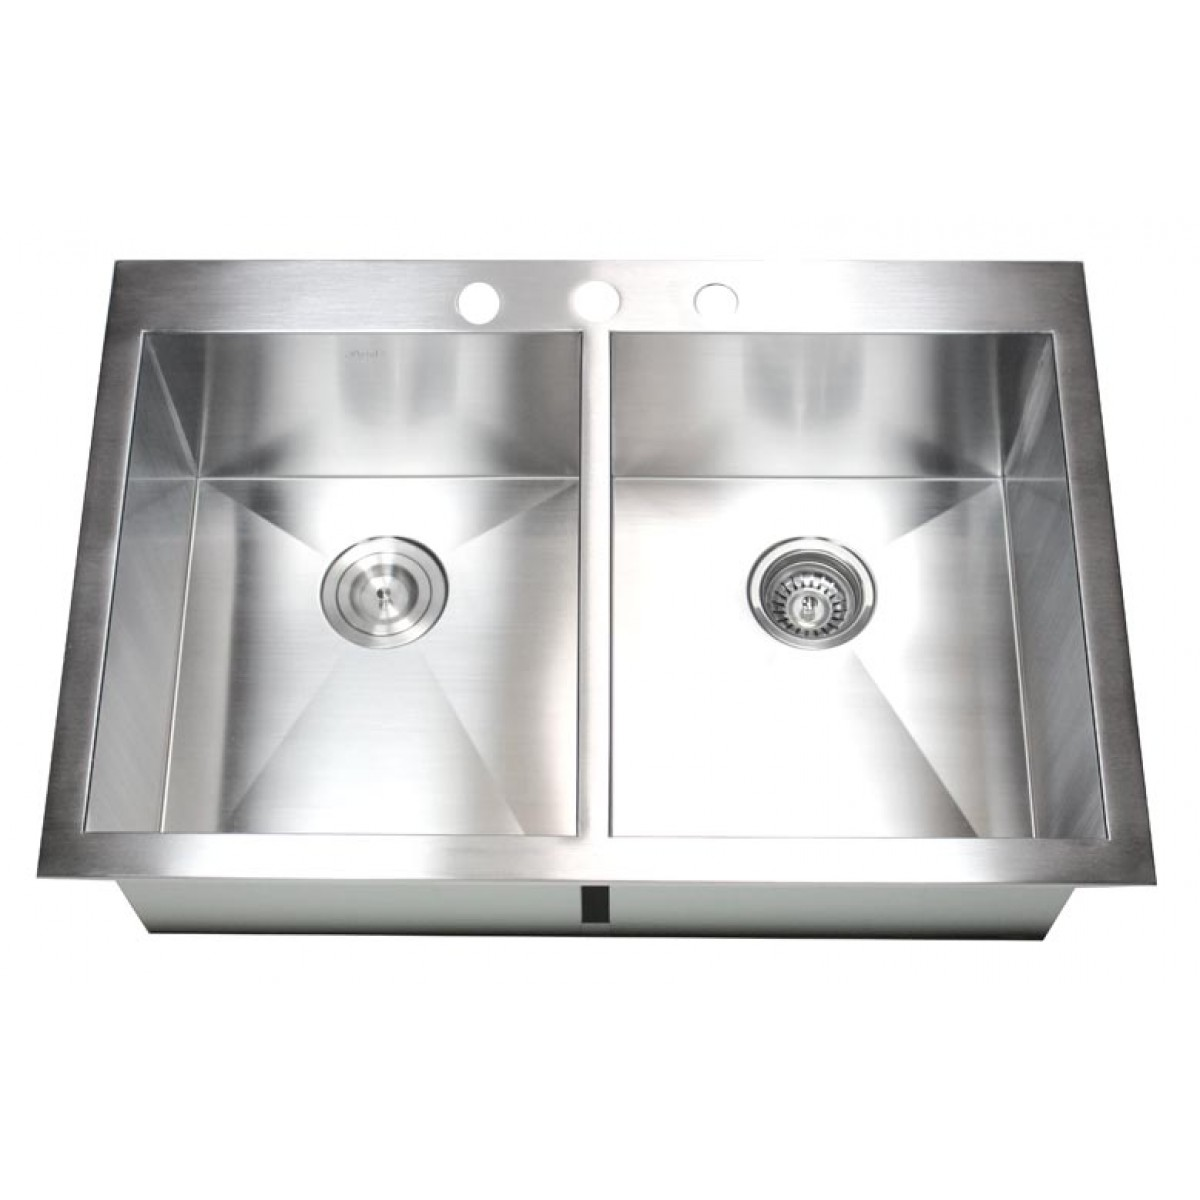 33 Inch Top-Mount / Drop-In Stainless Steel Double Bowl Kitchen Sink